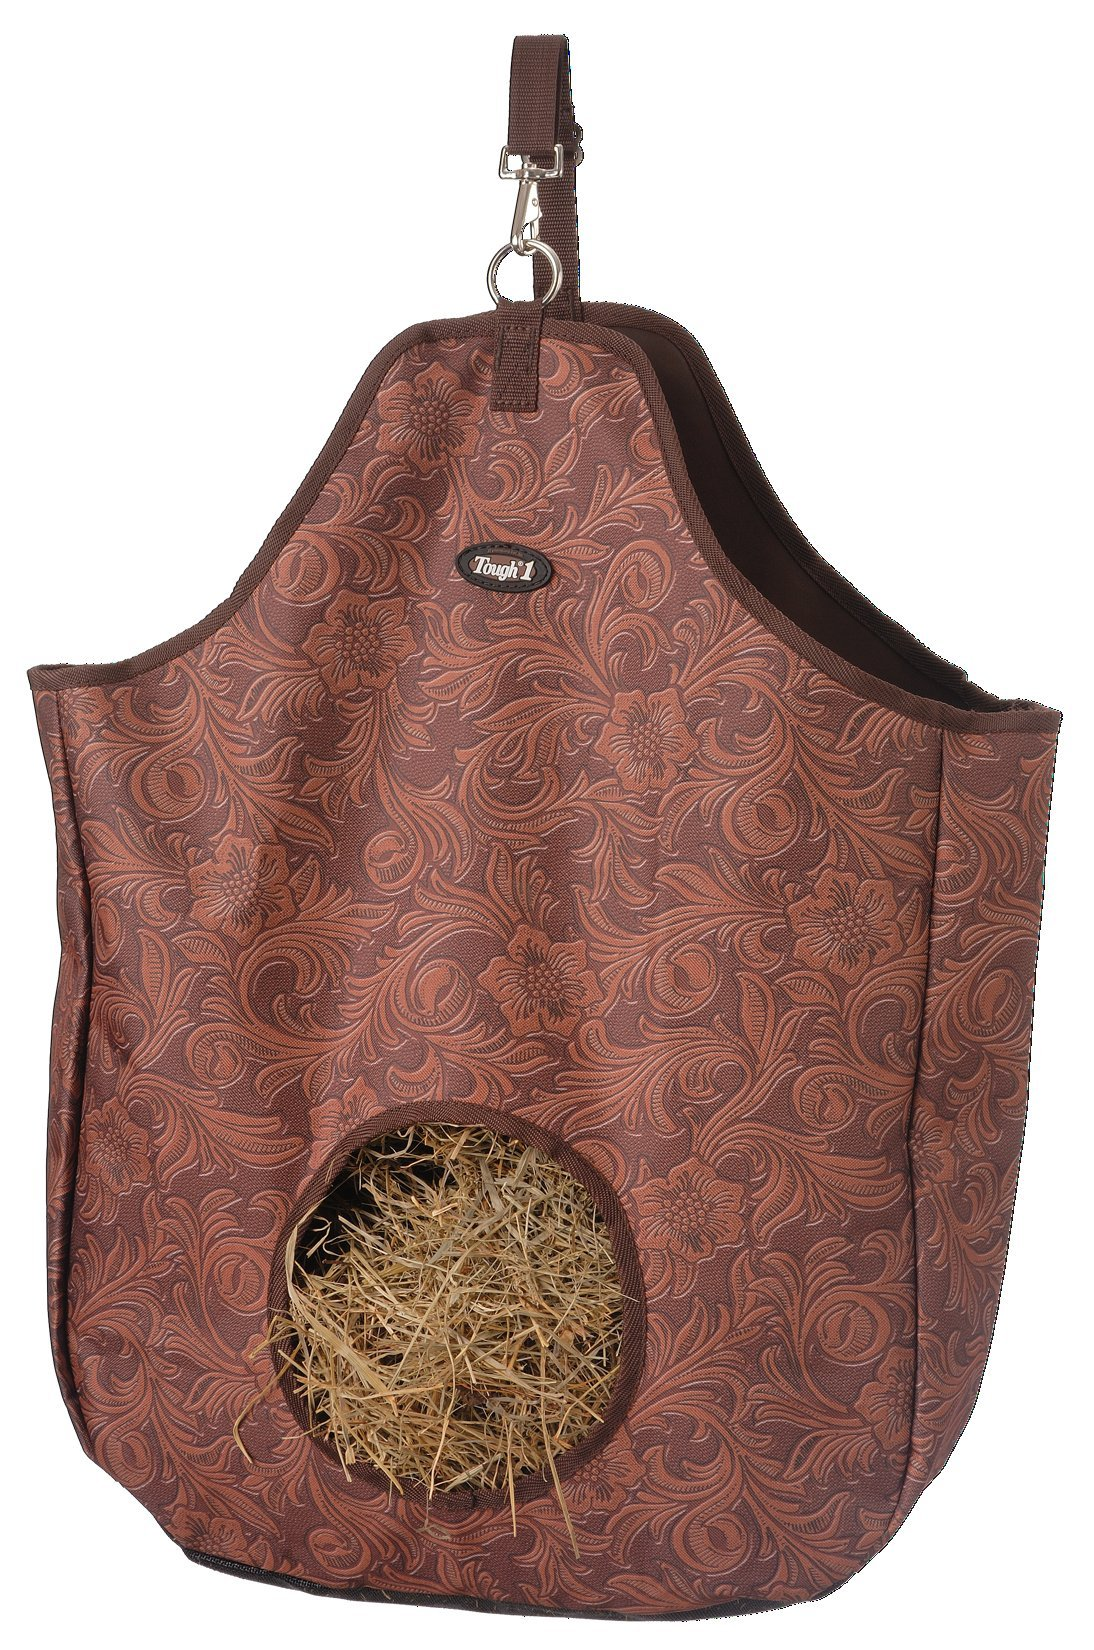 Tough 1 Nylon Hay Tote Bag in Prints, Tooled Leather Brown by Tough 1